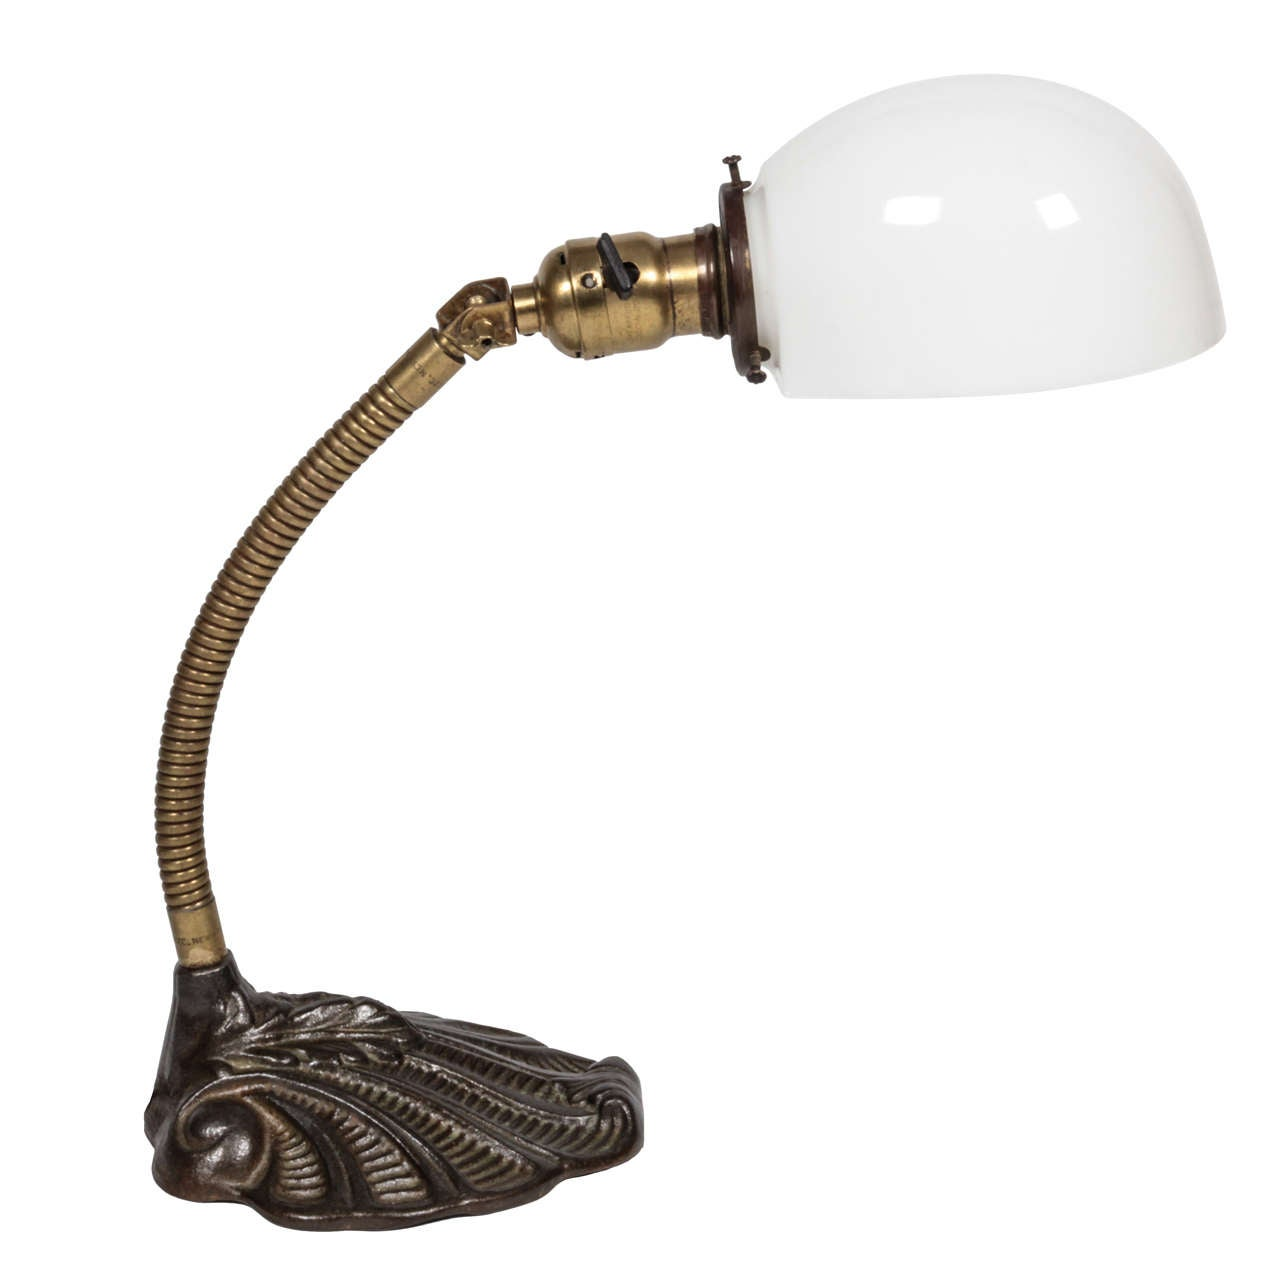 Antique Brass Desk Lamp with Milk Glass Shade For Sale - Antique Brass Desk Lamp With Milk Glass Shade At 1stdibs